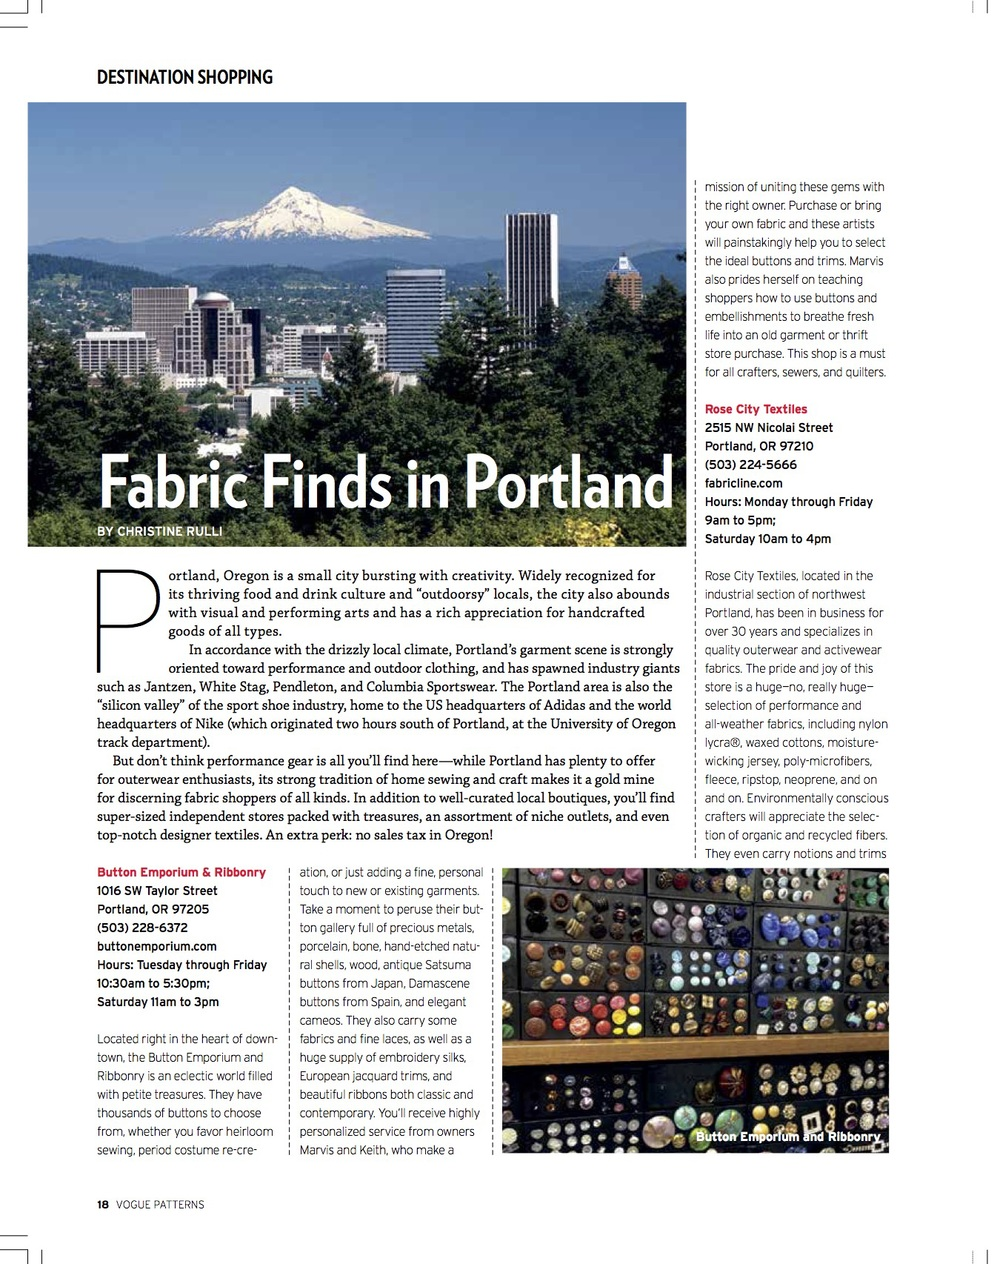 Vogue Patterns Magazine Portland Fabric edit Dec14-Jan15 issue (1).jpg